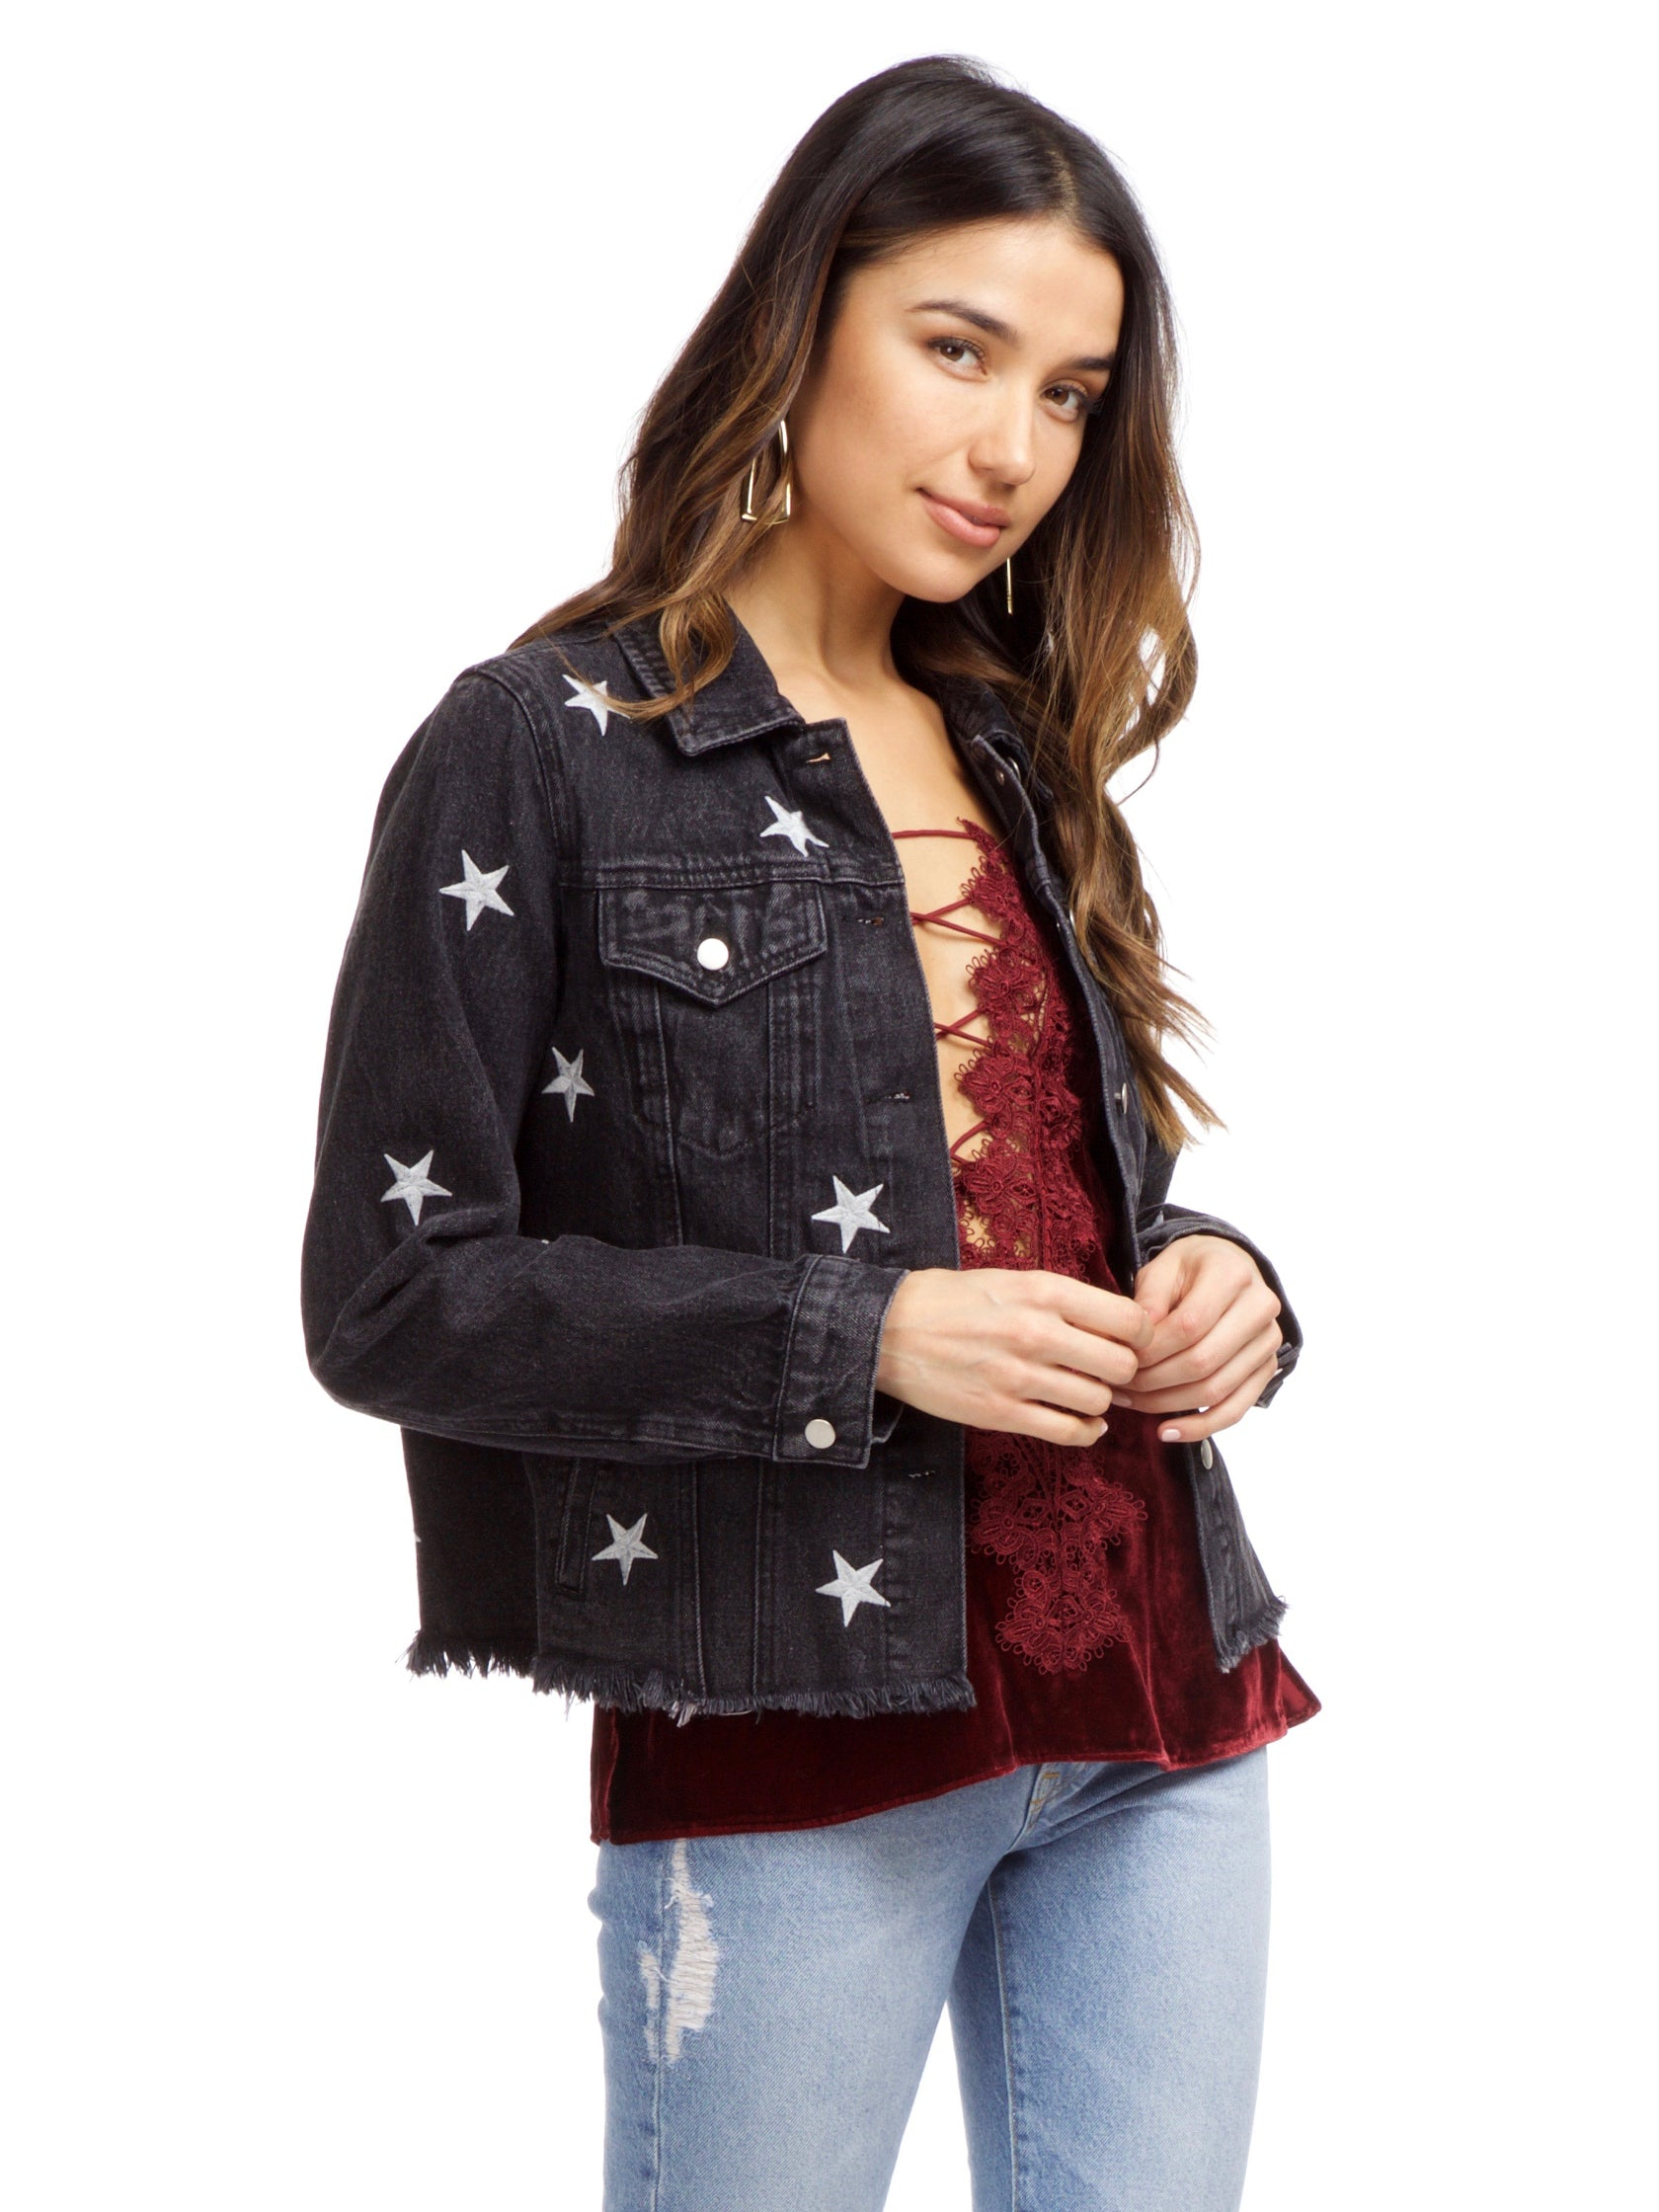 Women wearing a jacket rental from FashionPass called Stardust Denim Jacket